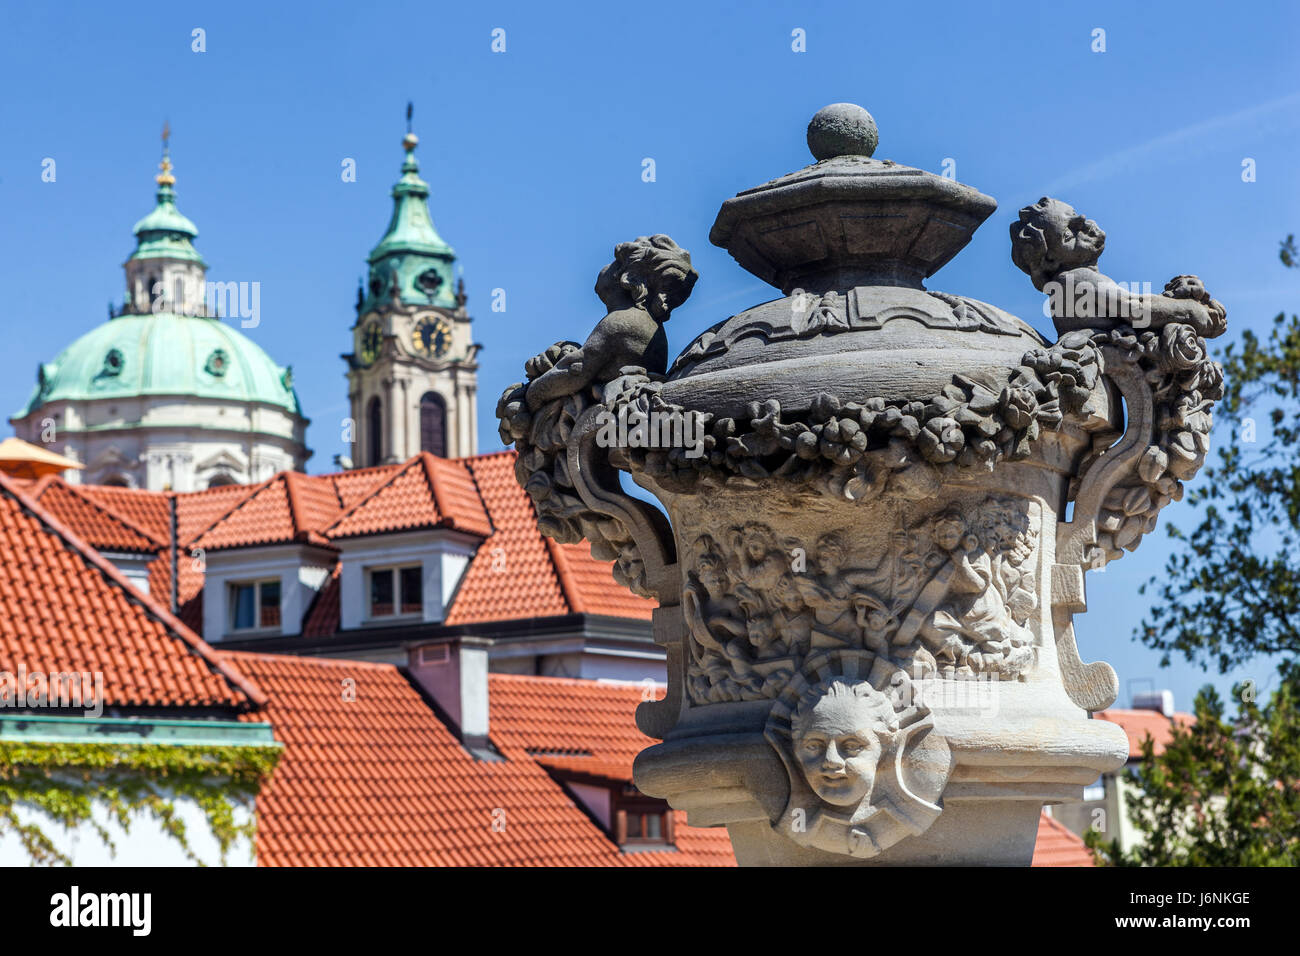 One of the most beautiful baroque gardens in Prague, Vrtba Garden, Mala Strana, Czech Republic, Europe - Stock Image